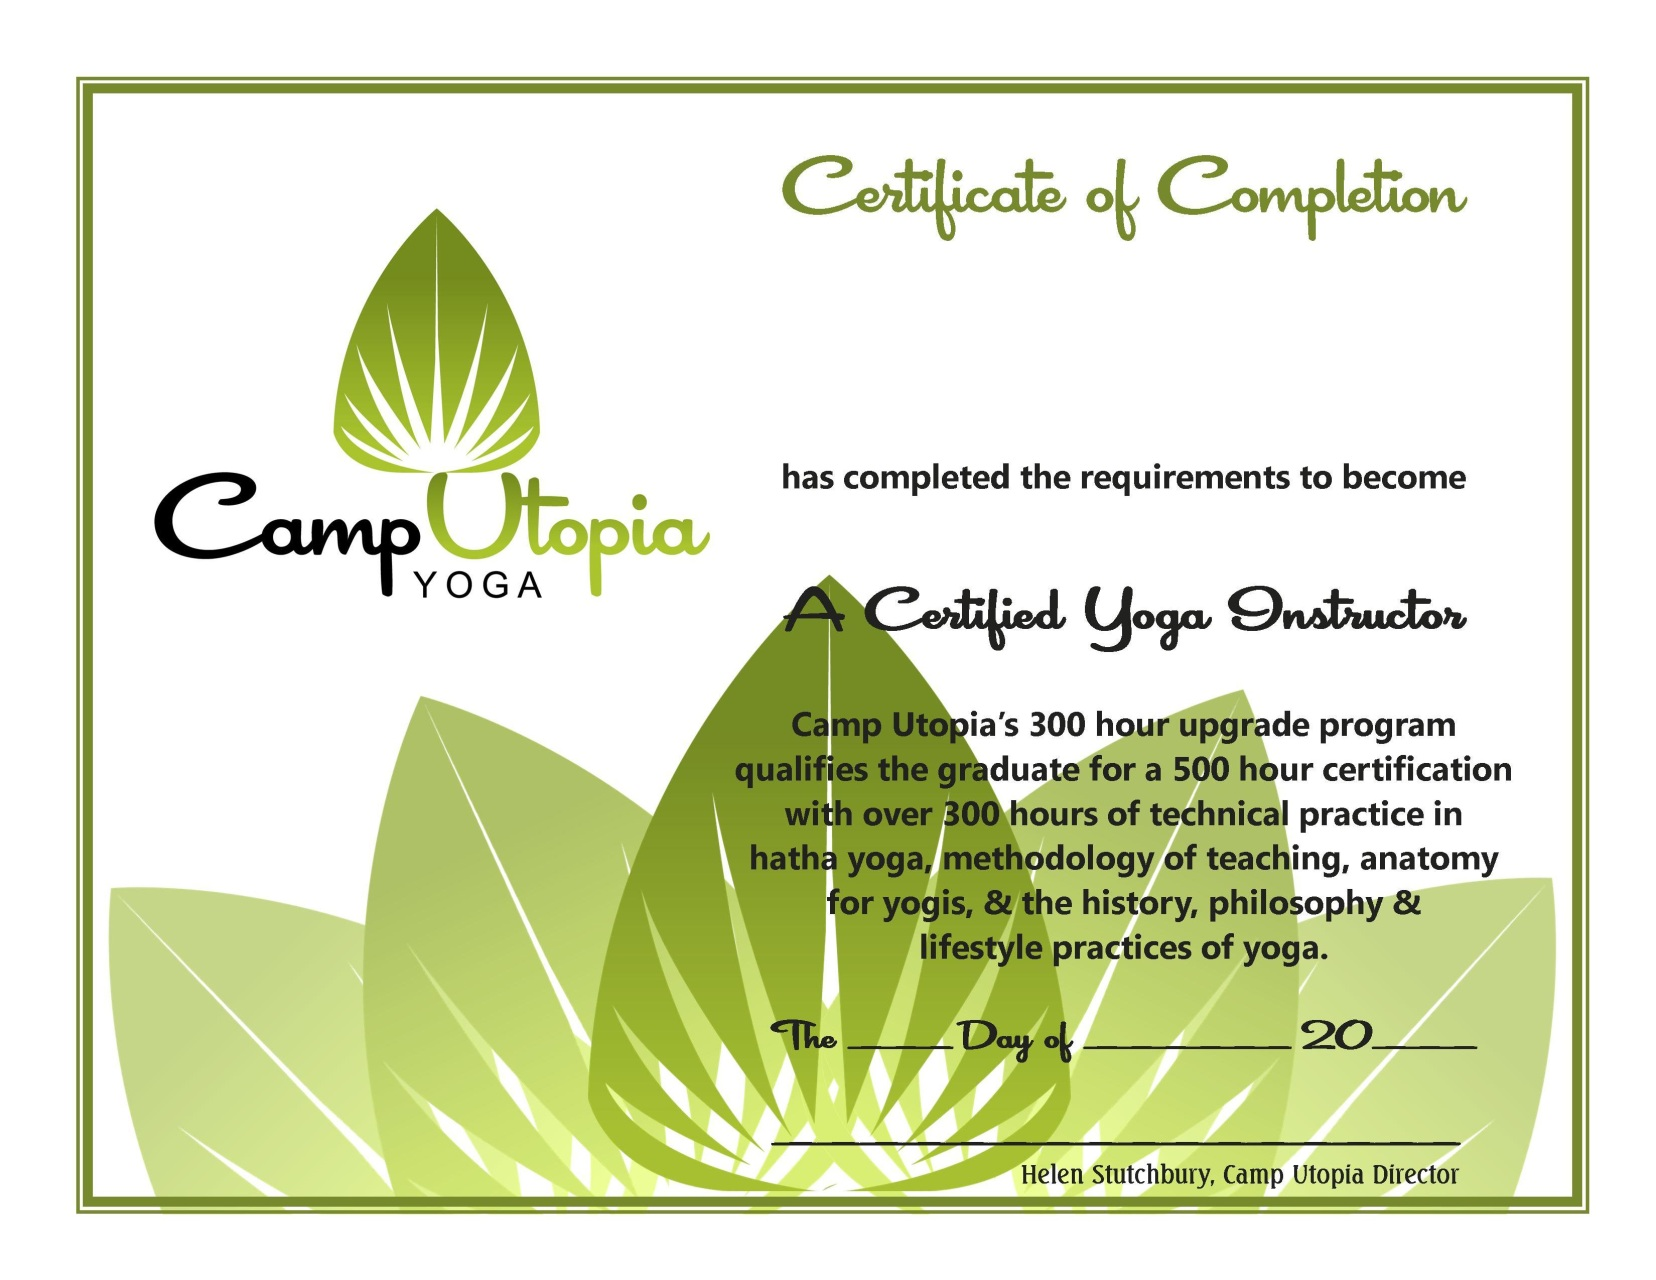 Register camp utopia yoga teacher training pay online for your 300 hour training part 1 deep yoga focus 1betcityfo Images